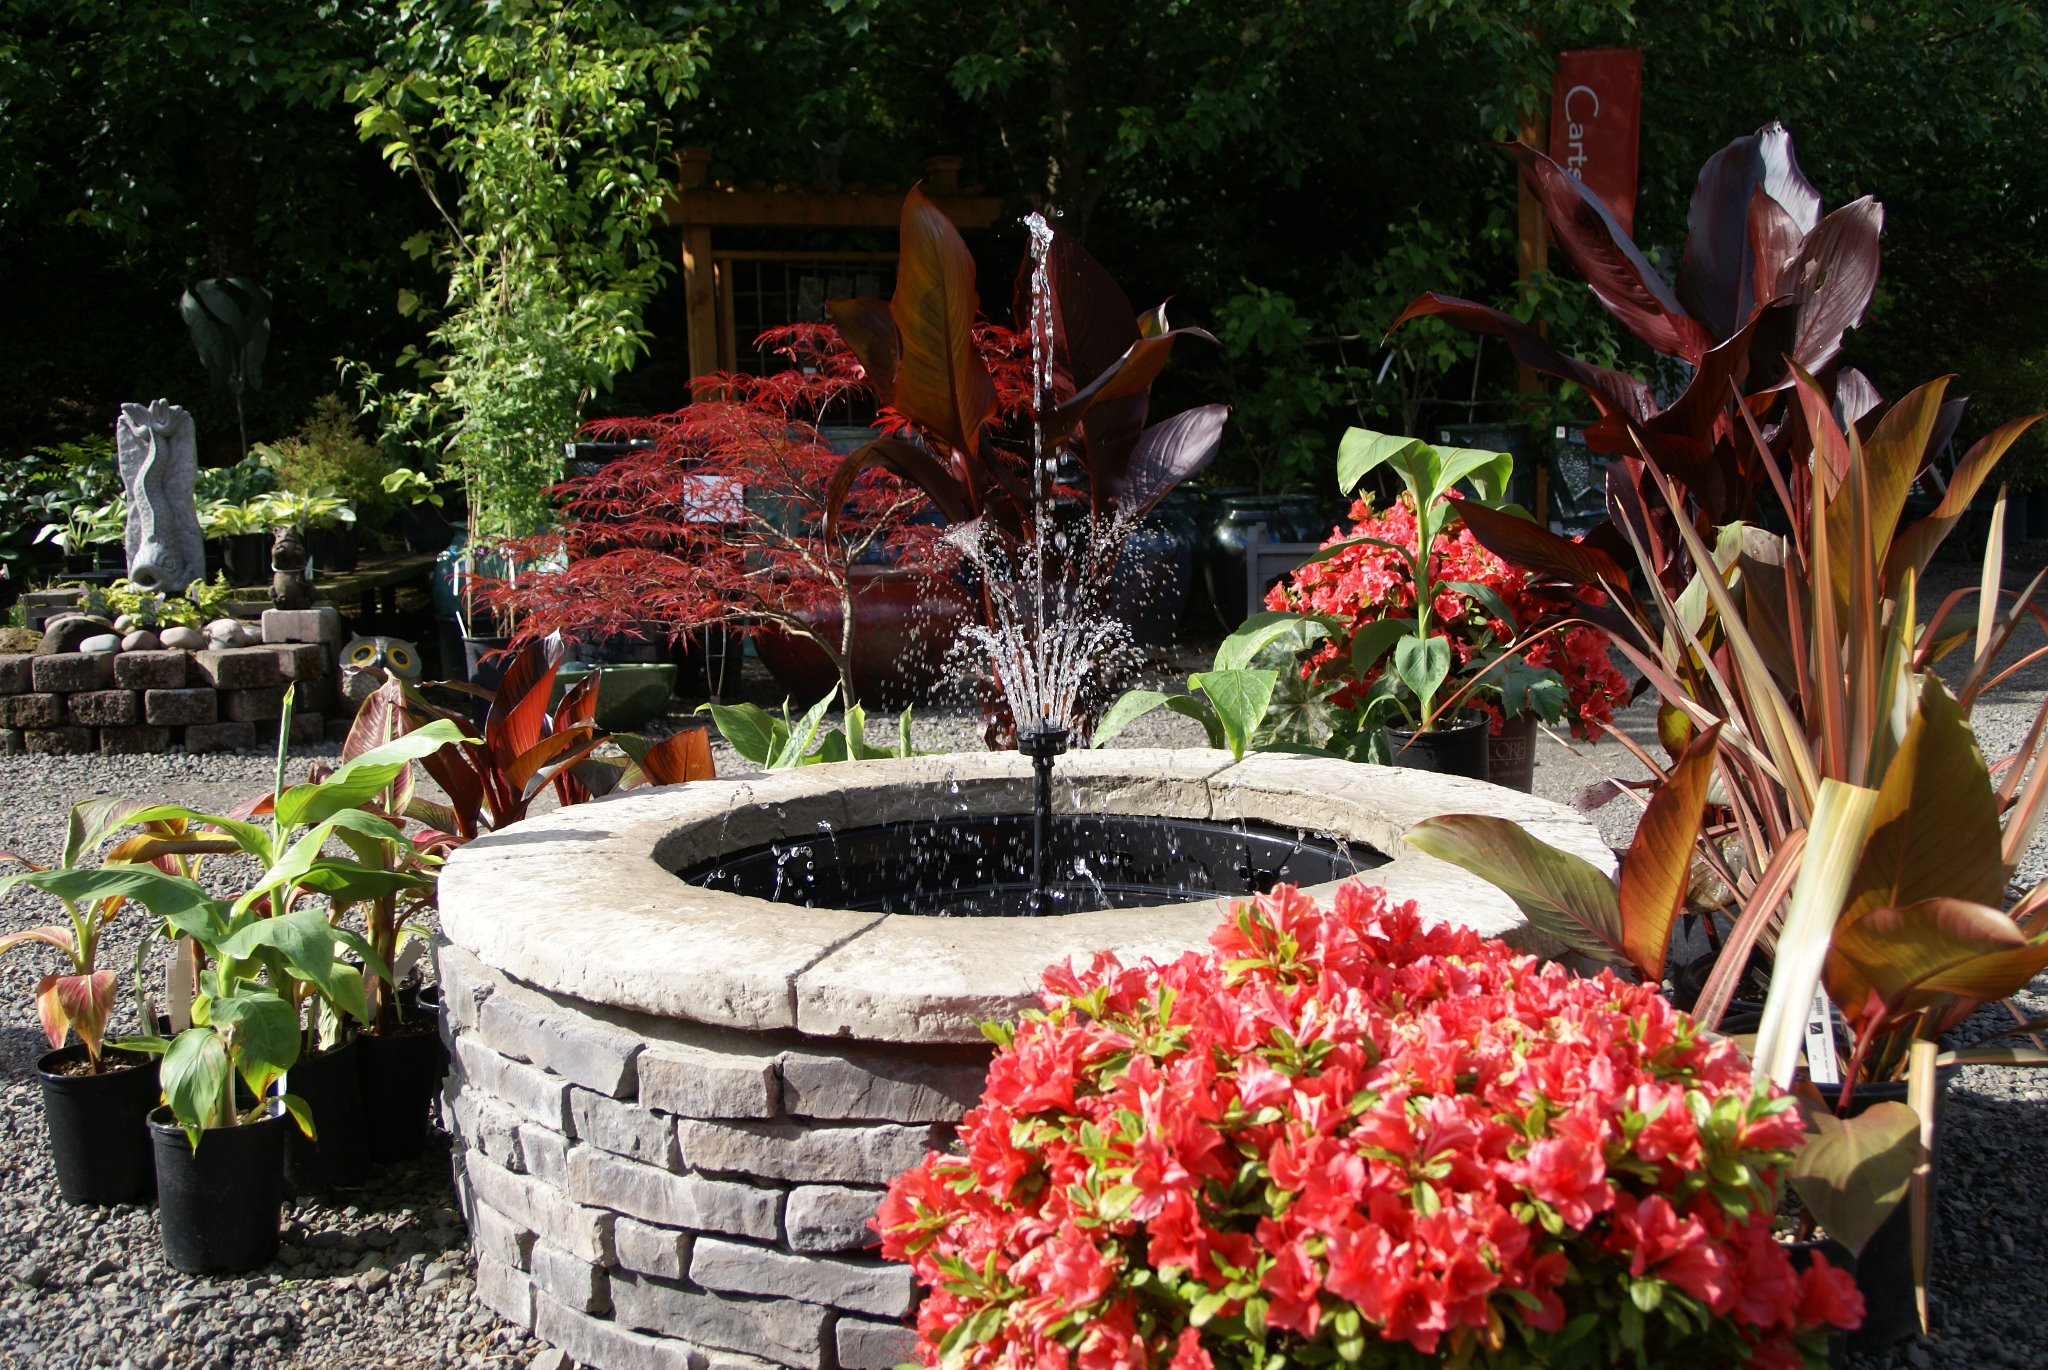 Fire pit doubles as musical water fountain garden center tv for Flower fire pit